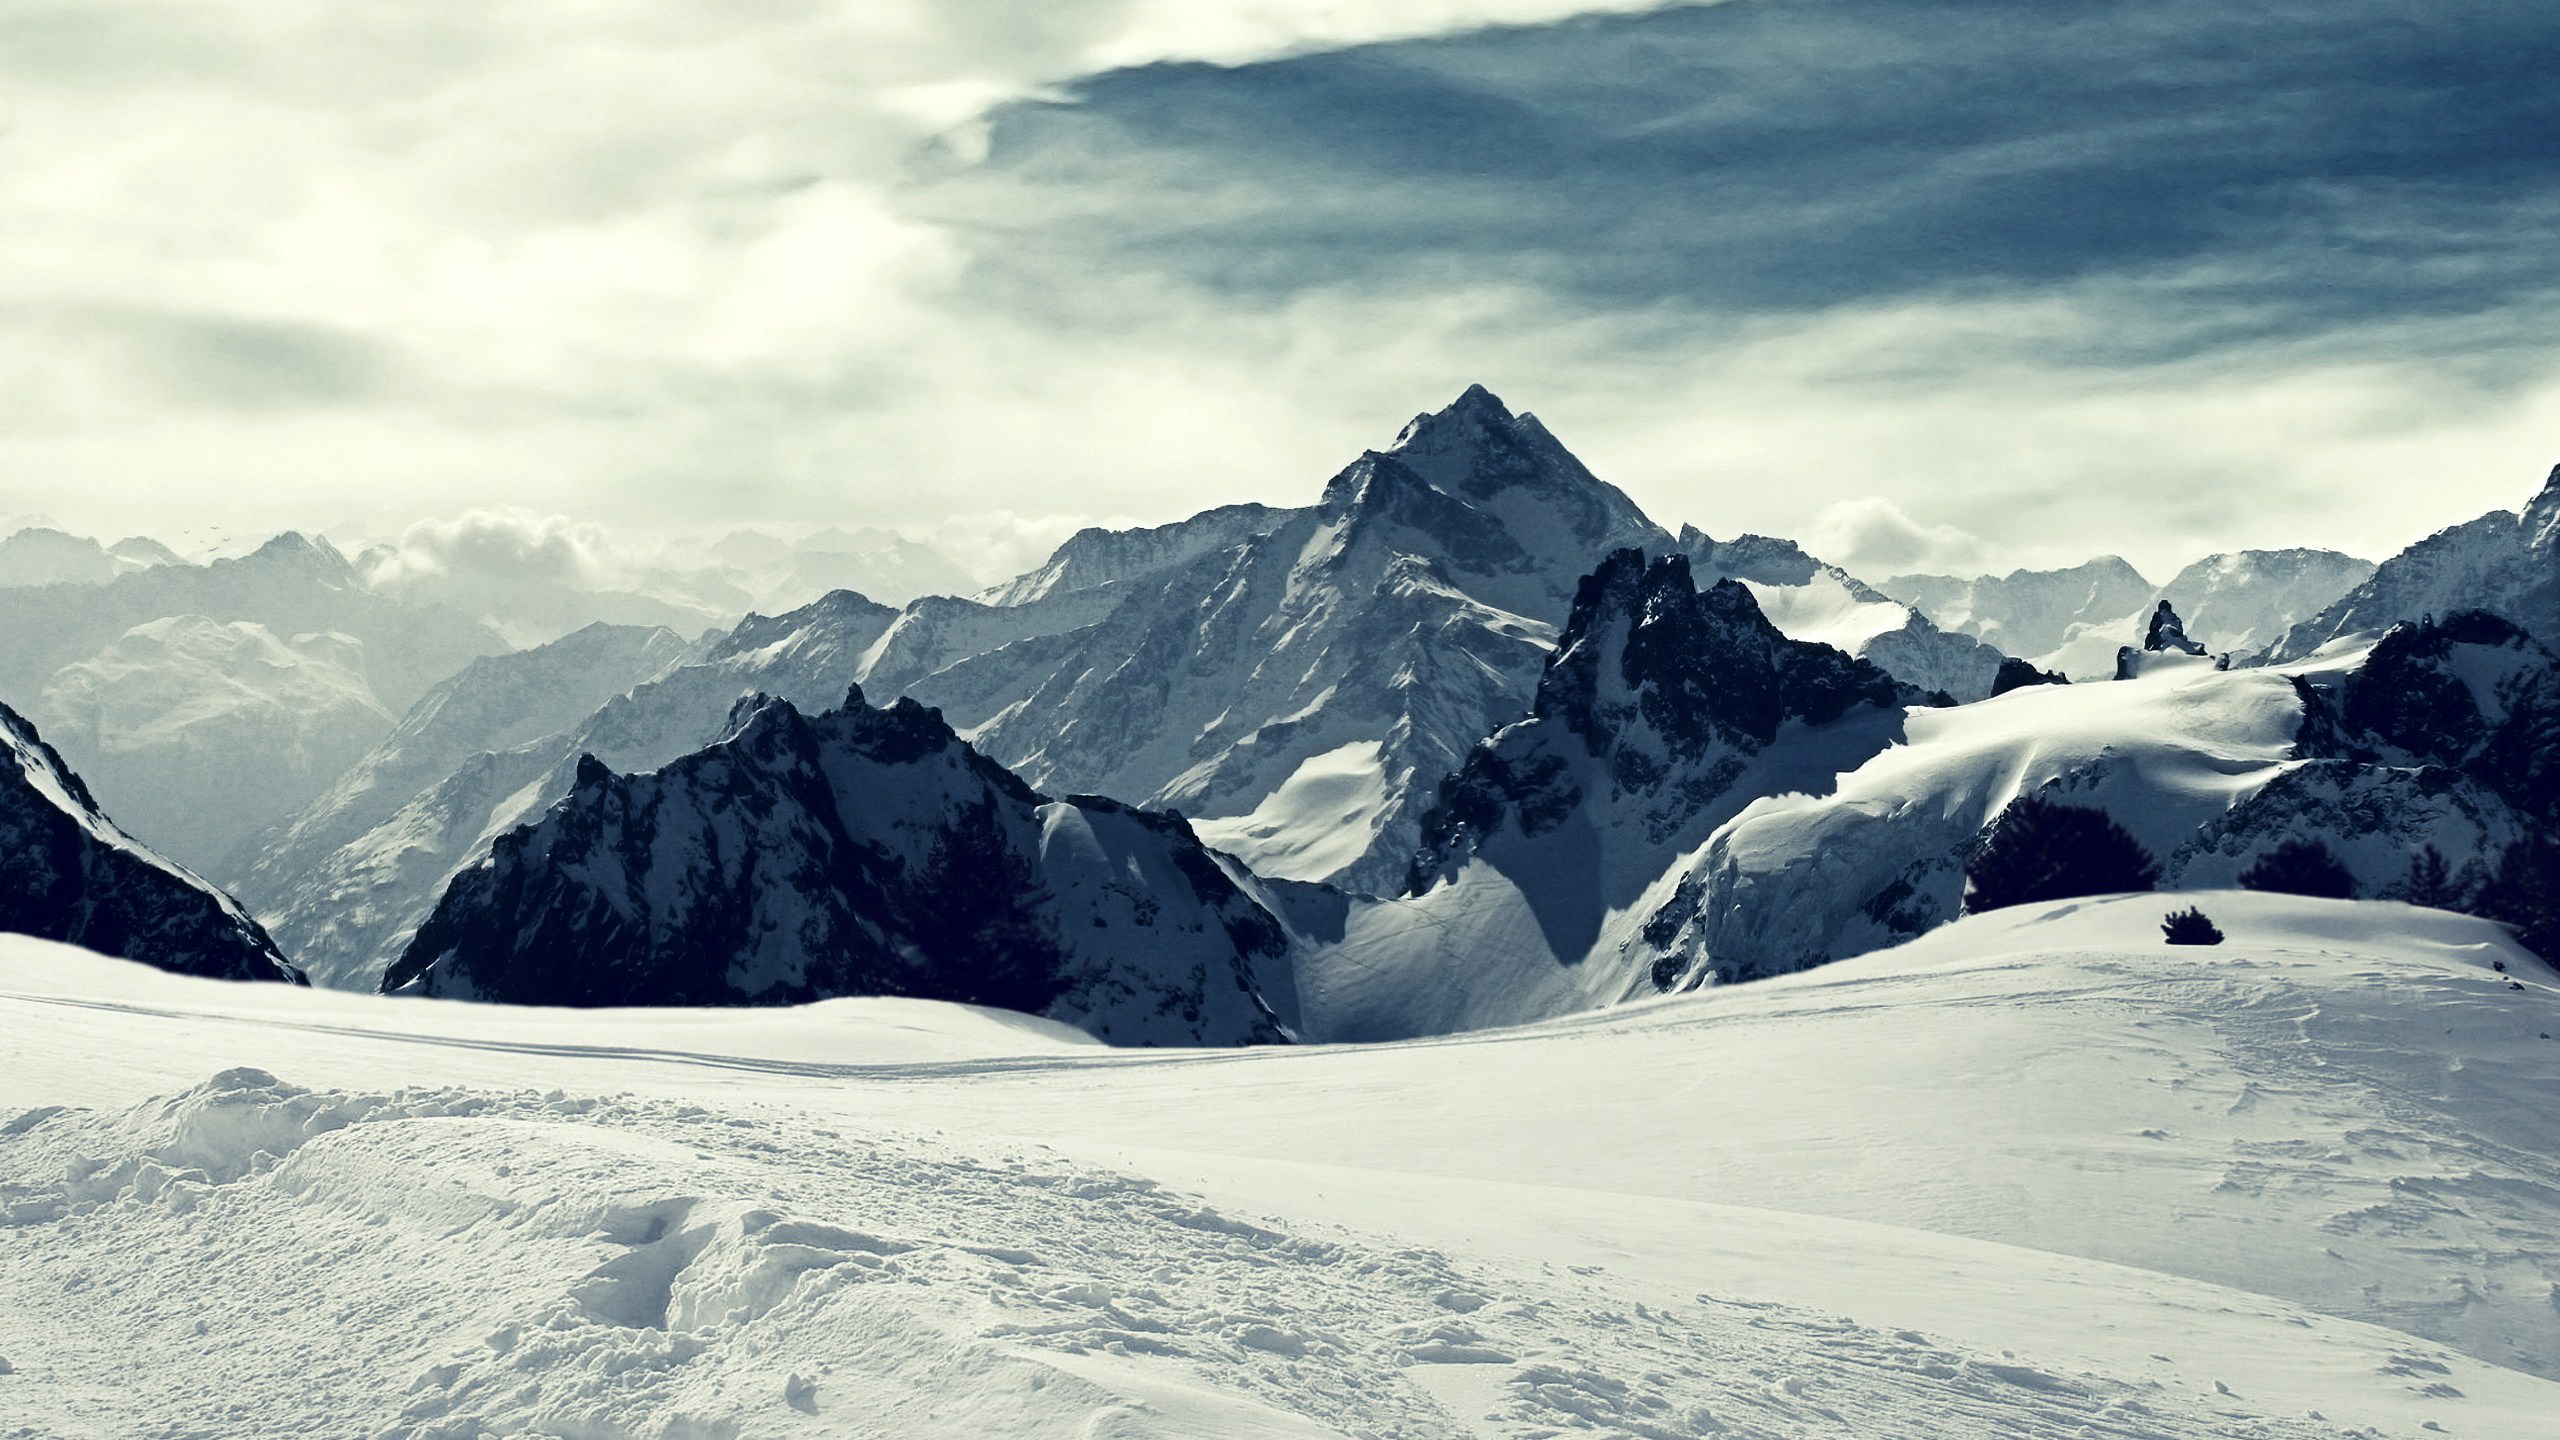 Daily Wallpaper Icelandic Mountains I Like To Waste My Time 2560x1440